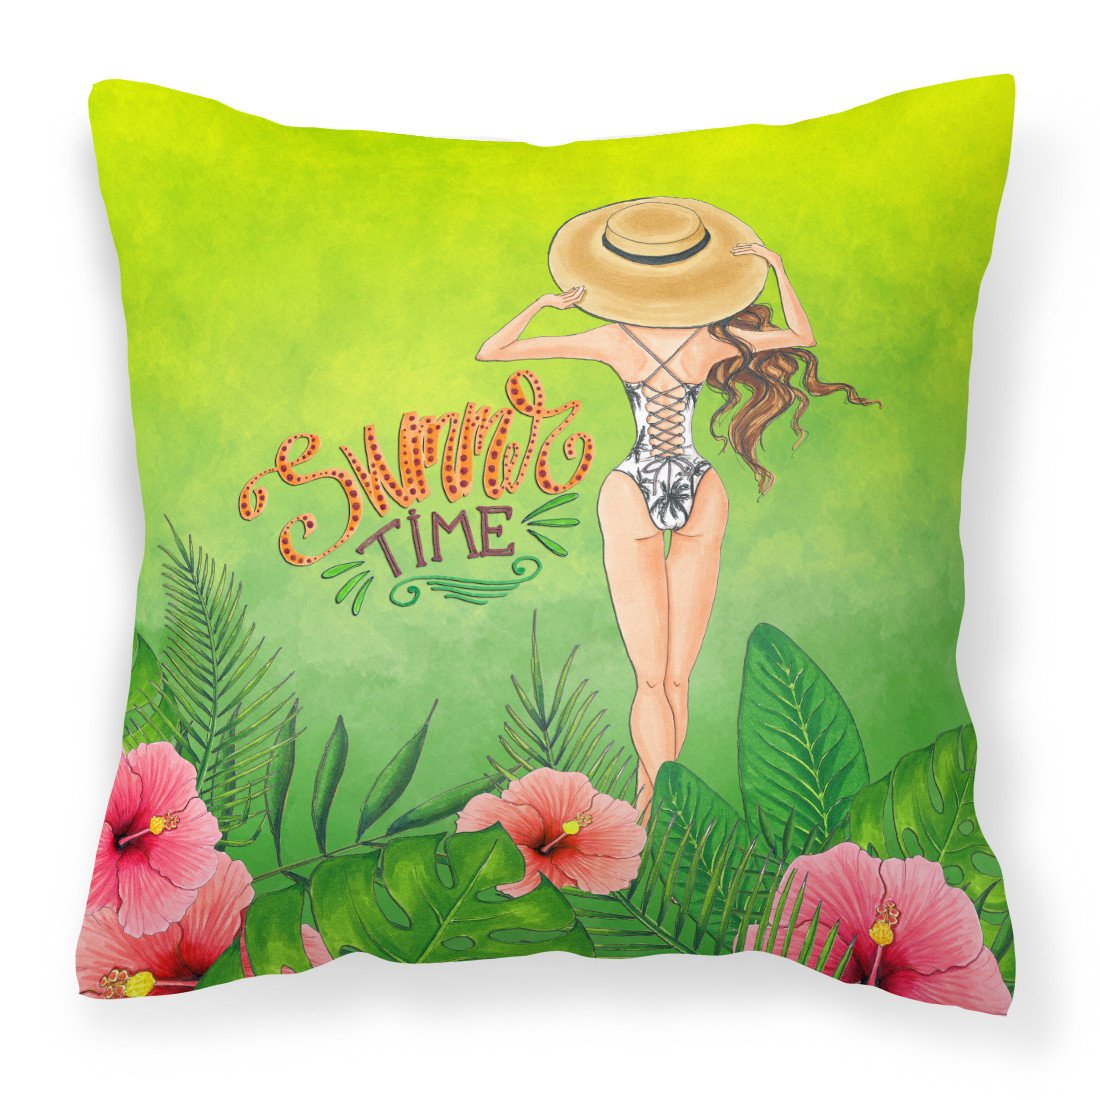 Summer Time Lady in Swimsuit Fabric Decorative Pillow BB7455PW1818 by Caroline's Treasures